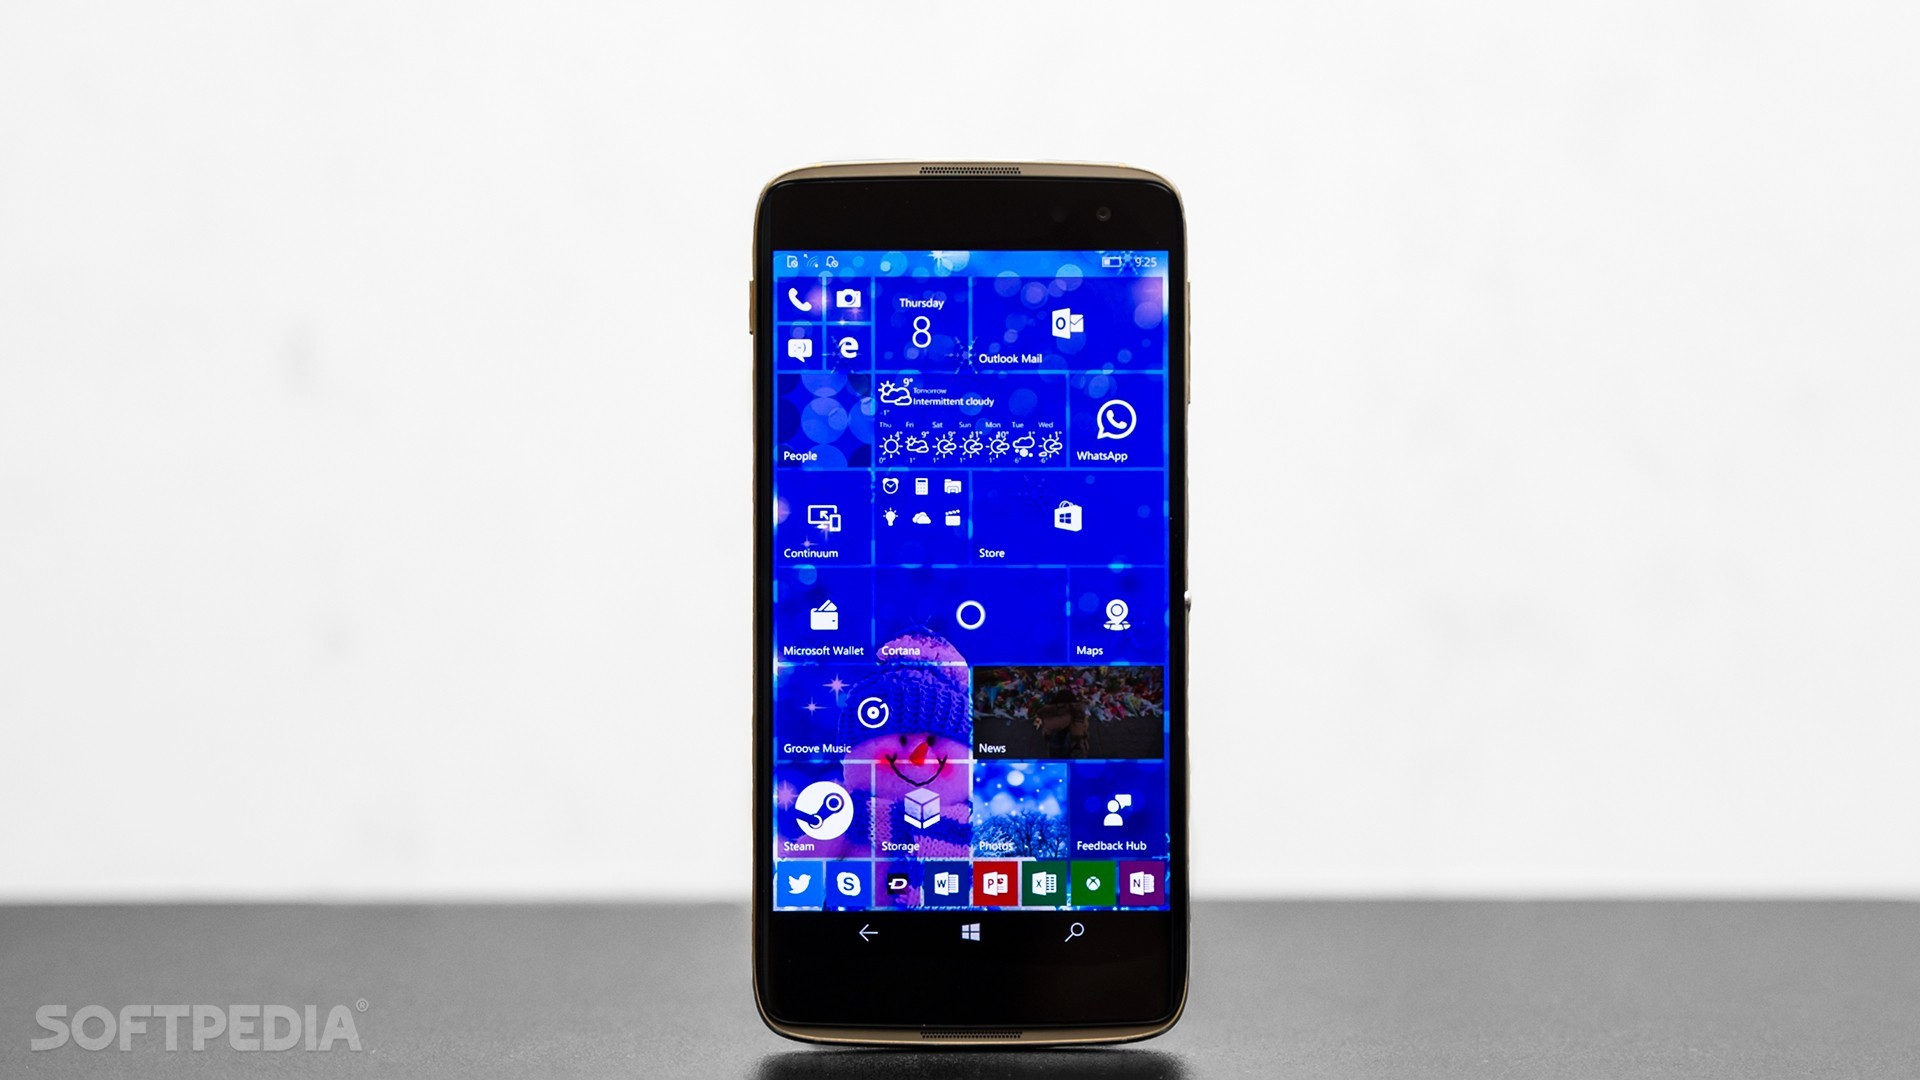 Facebook Apps for Windows Phone Go Dark as Nobody Uses the